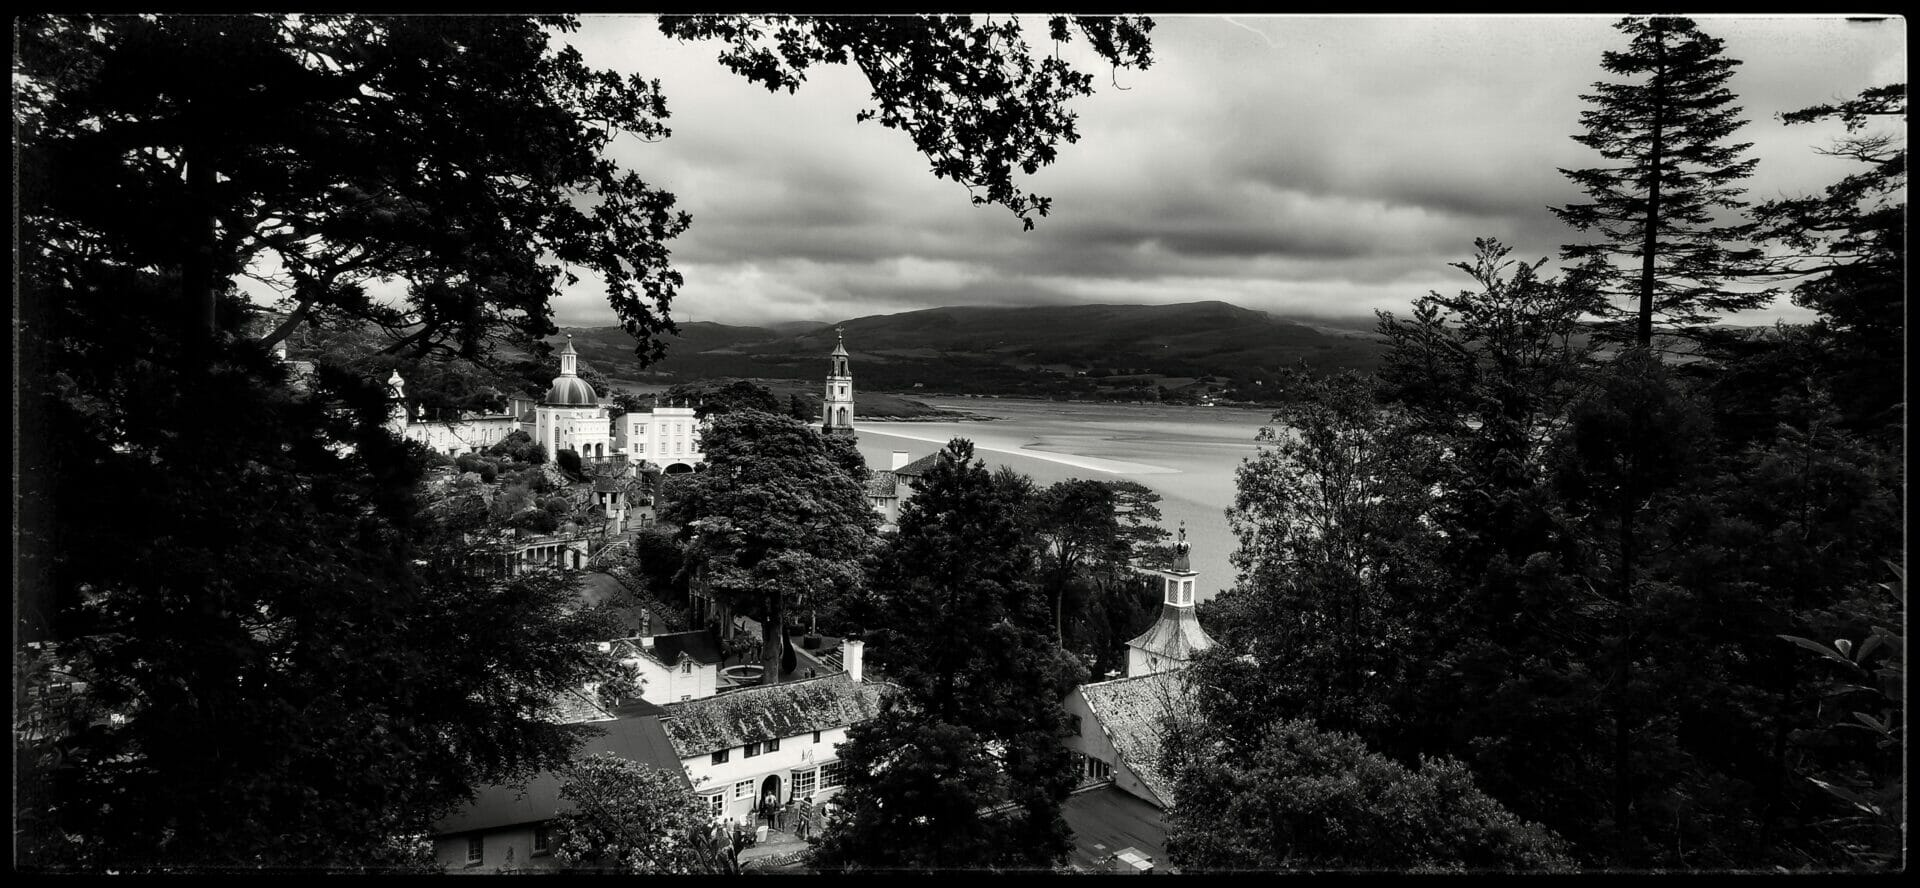 Black and White Photo of the Portmeirion Village in North Wales taken from a hillside viewpoint overlooking the estuary.